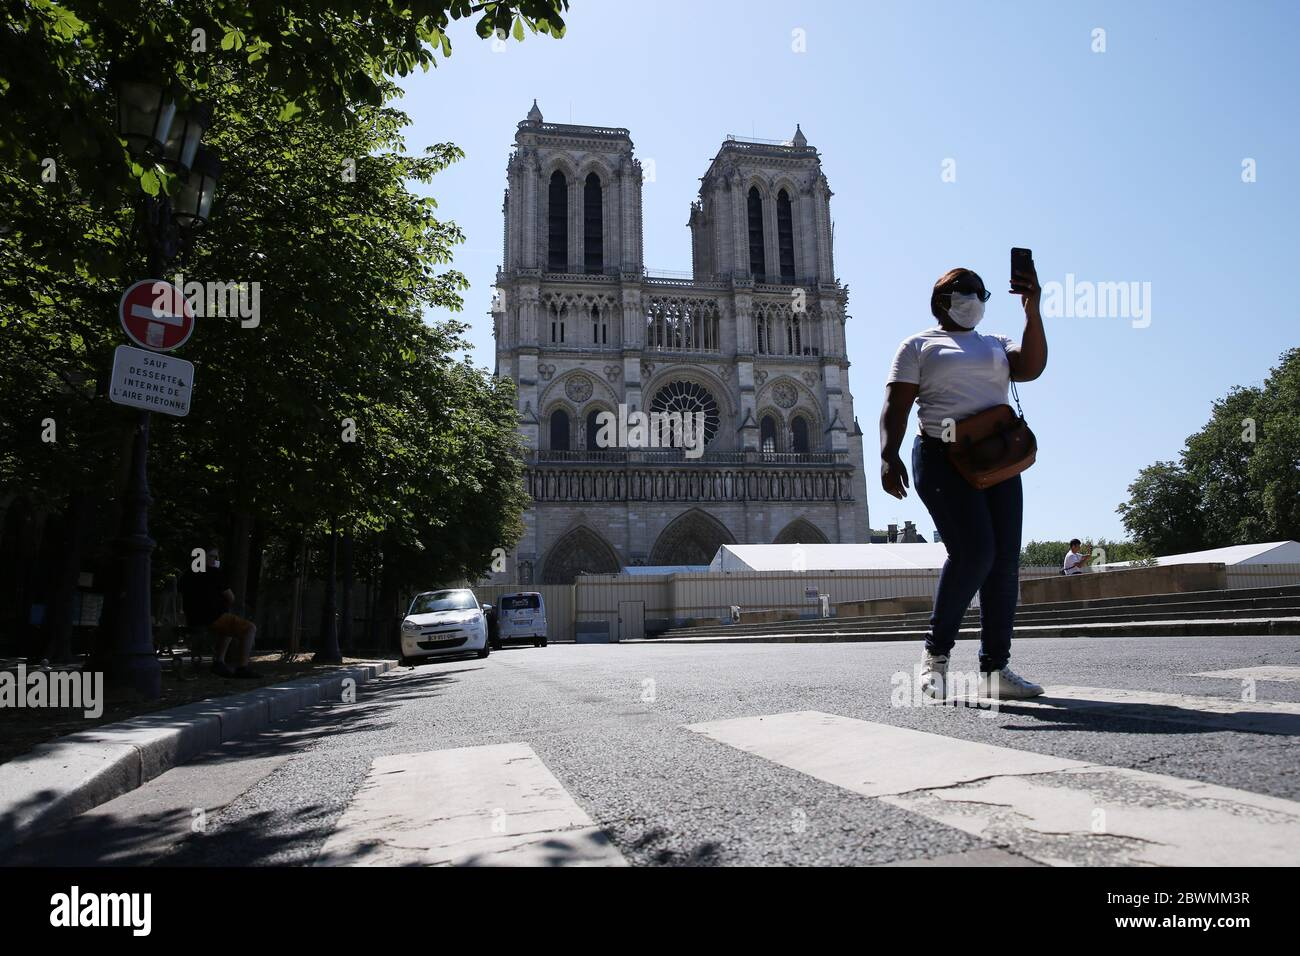 Paris, June 2. 15th Apr, 2019. A woman walks in front of the Notre-Dame Cathedral in Paris, France, June 2, 2020. The Parvis Notre-Dame was reopened to the public from May 31 after more than one year's close because of the huge fire on April 15, 2019. Credit: Gao Jing/Xinhua/Alamy Live News Stock Photo